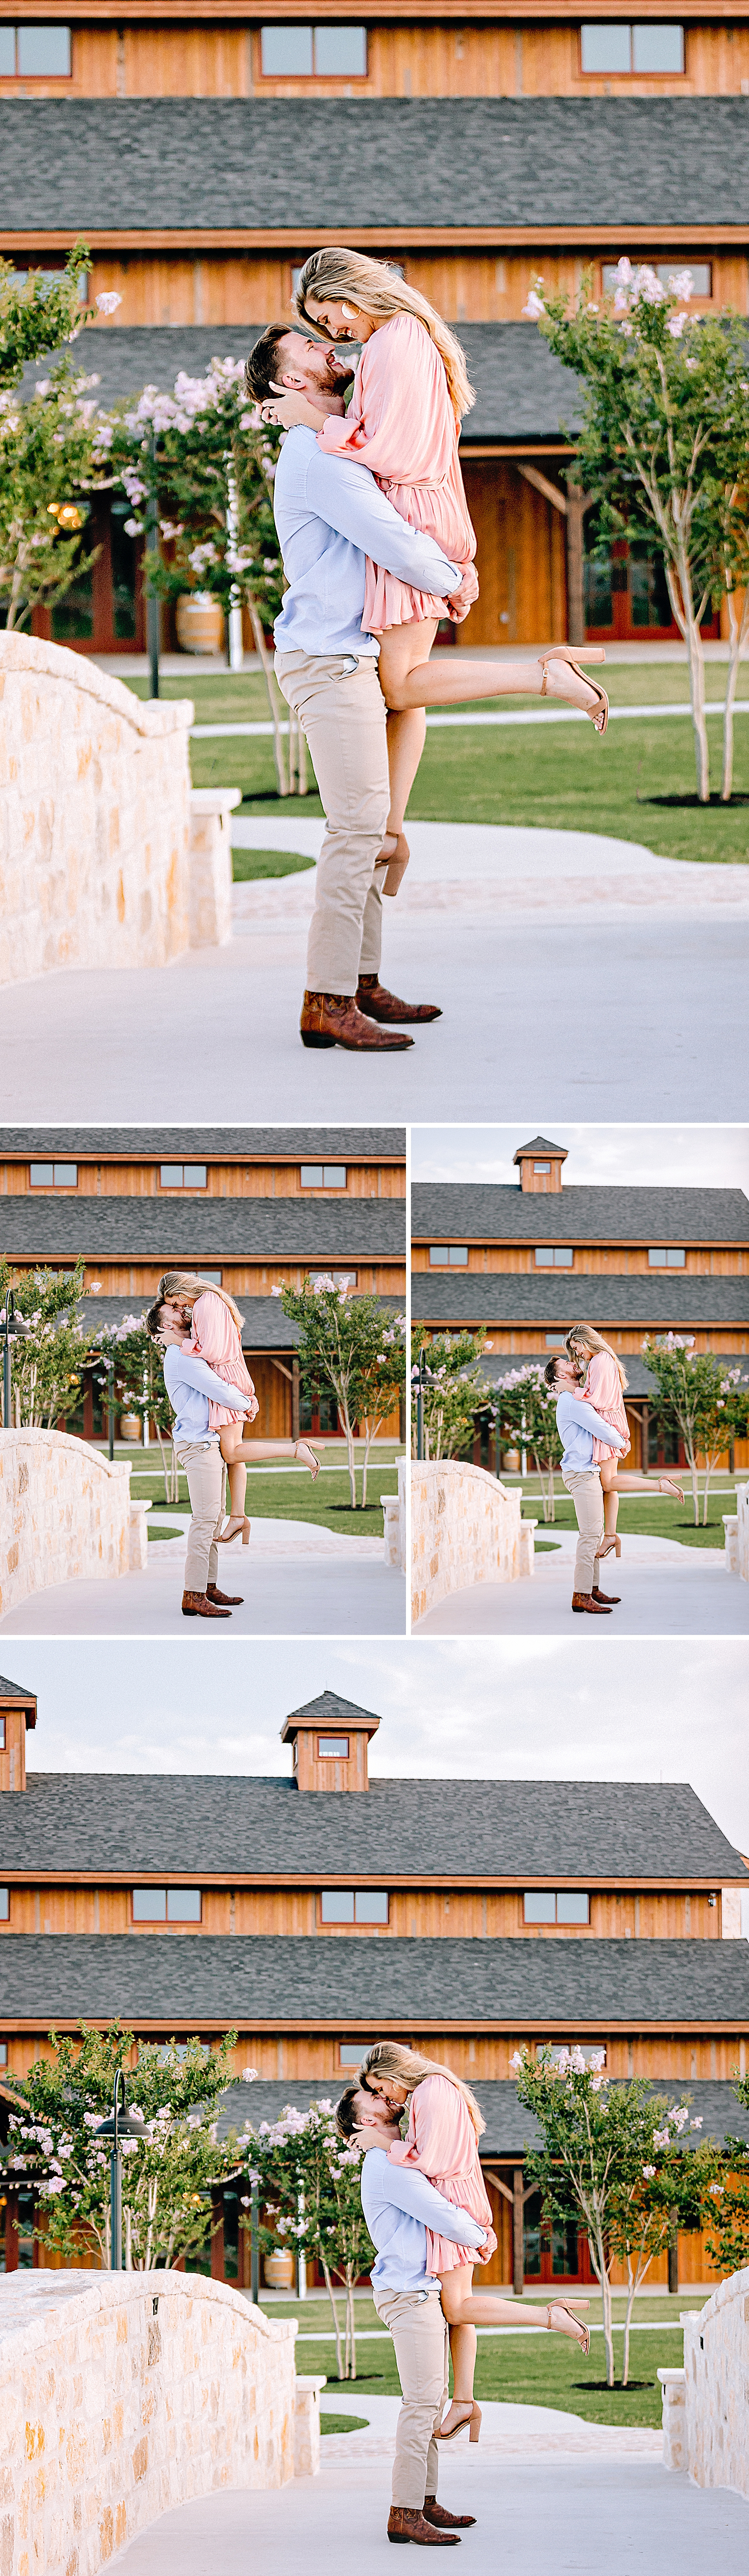 Carly-Barton-Photography-Engagement-Photos-College-Station-Texas-The-Weinberg-at-Wixon-Valley_0019.jpg